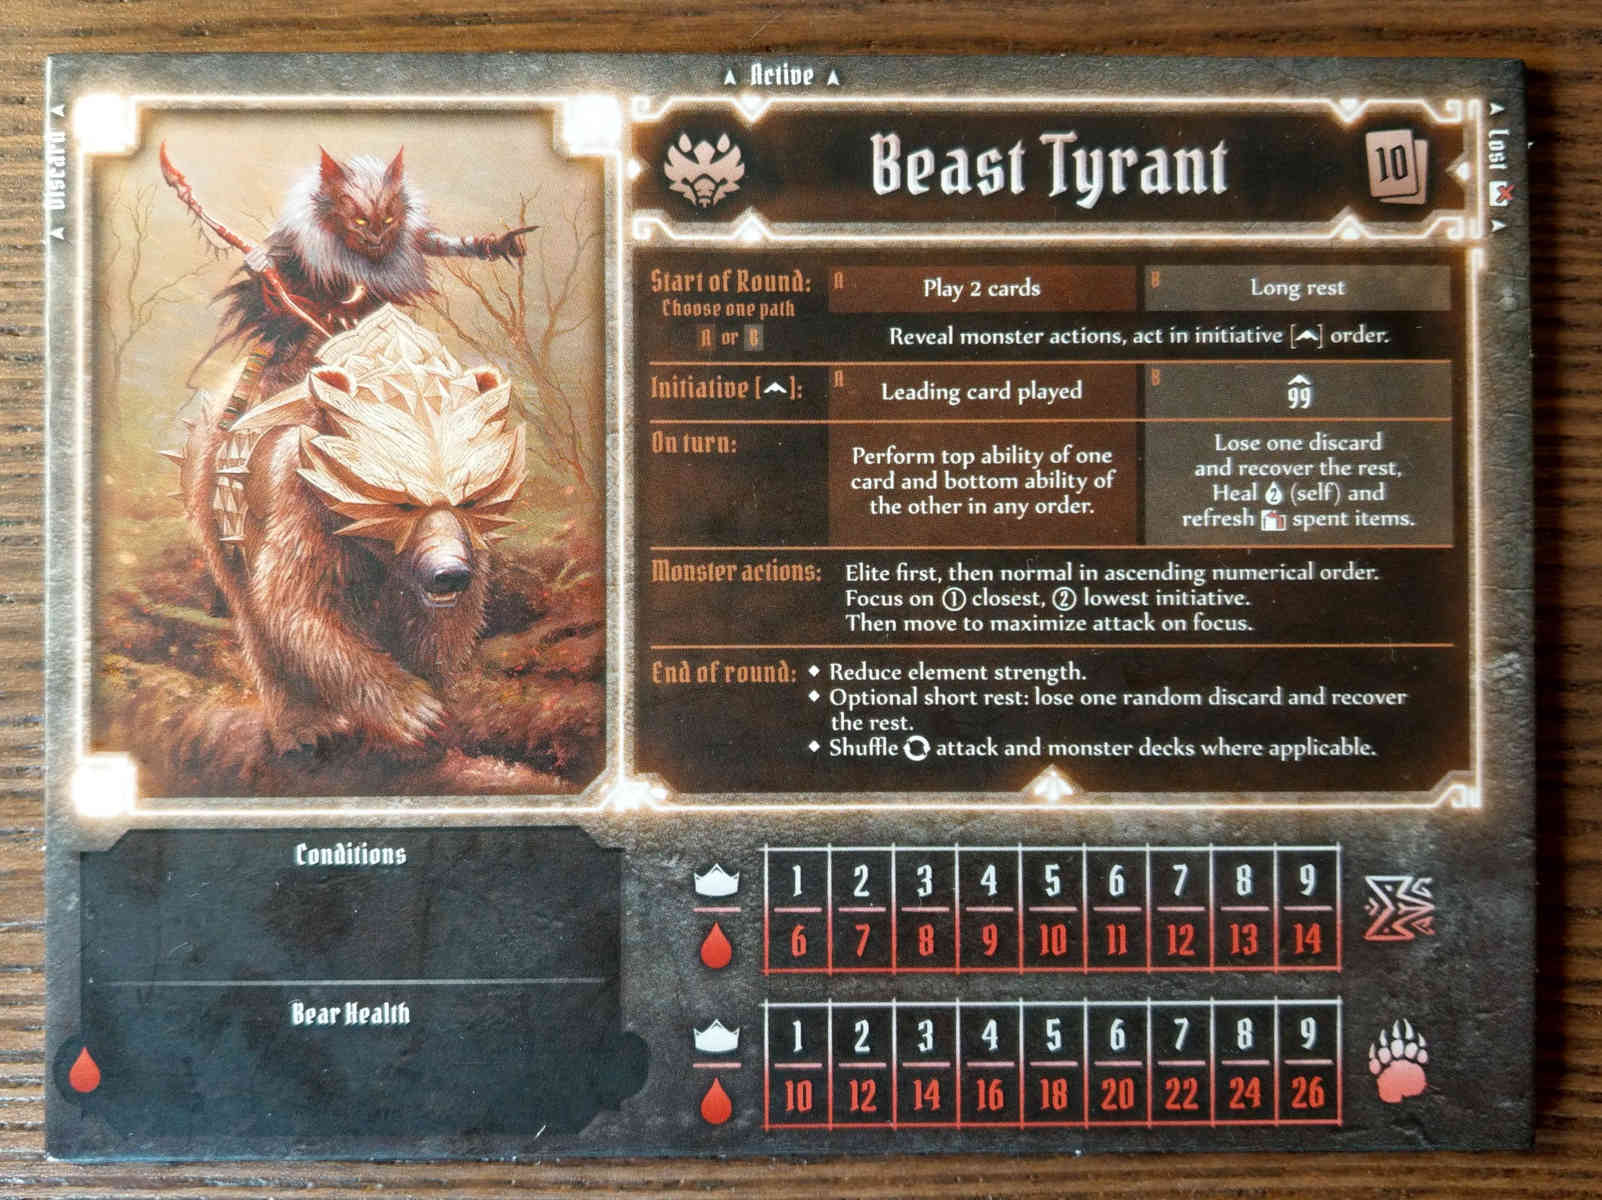 Beast Tyrant character board showing health and levels